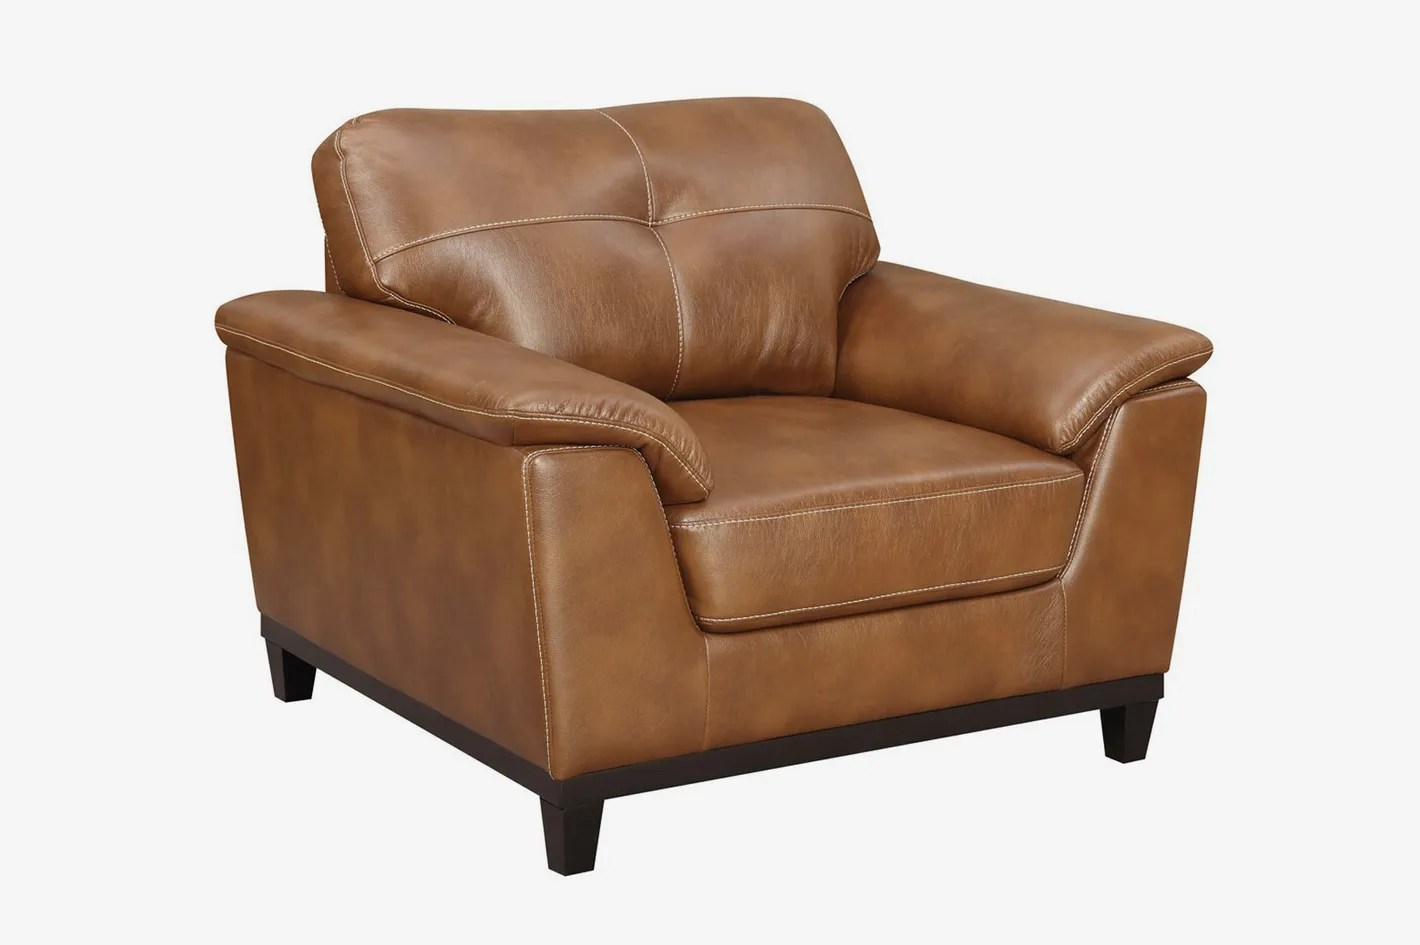 9 Best Lounge Chairs With Back Support 2018